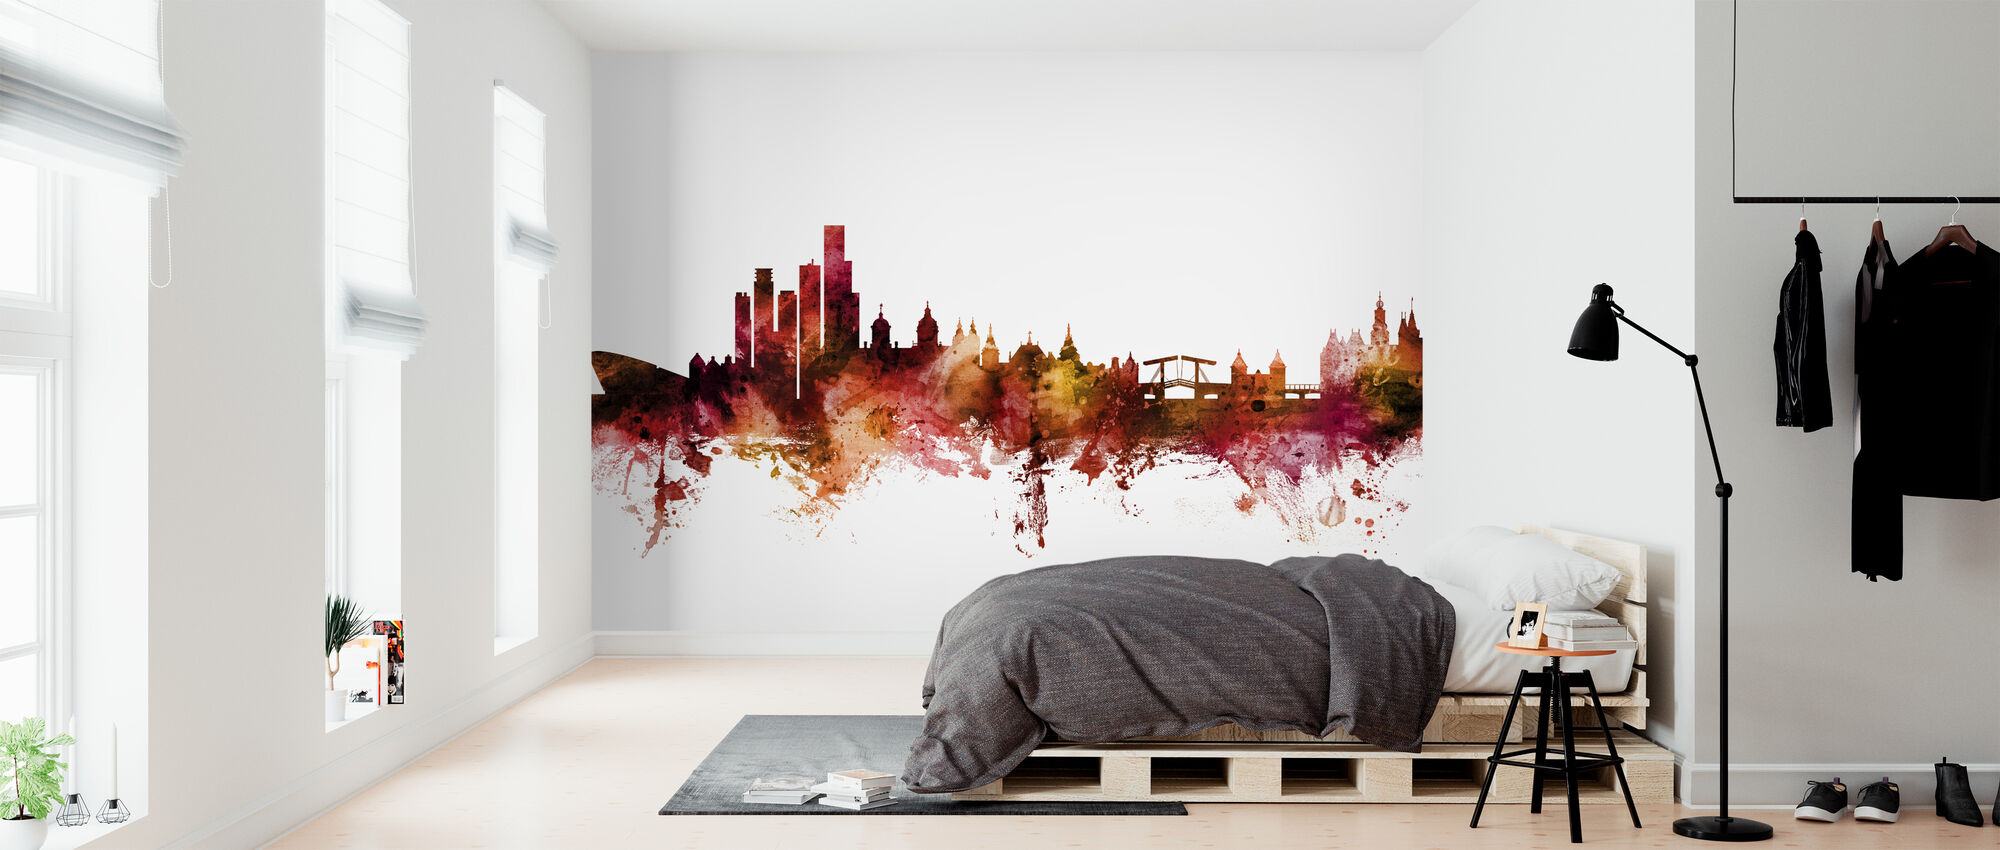 Amsterdam The Netherlands Skyline - Wallpaper - Bedroom